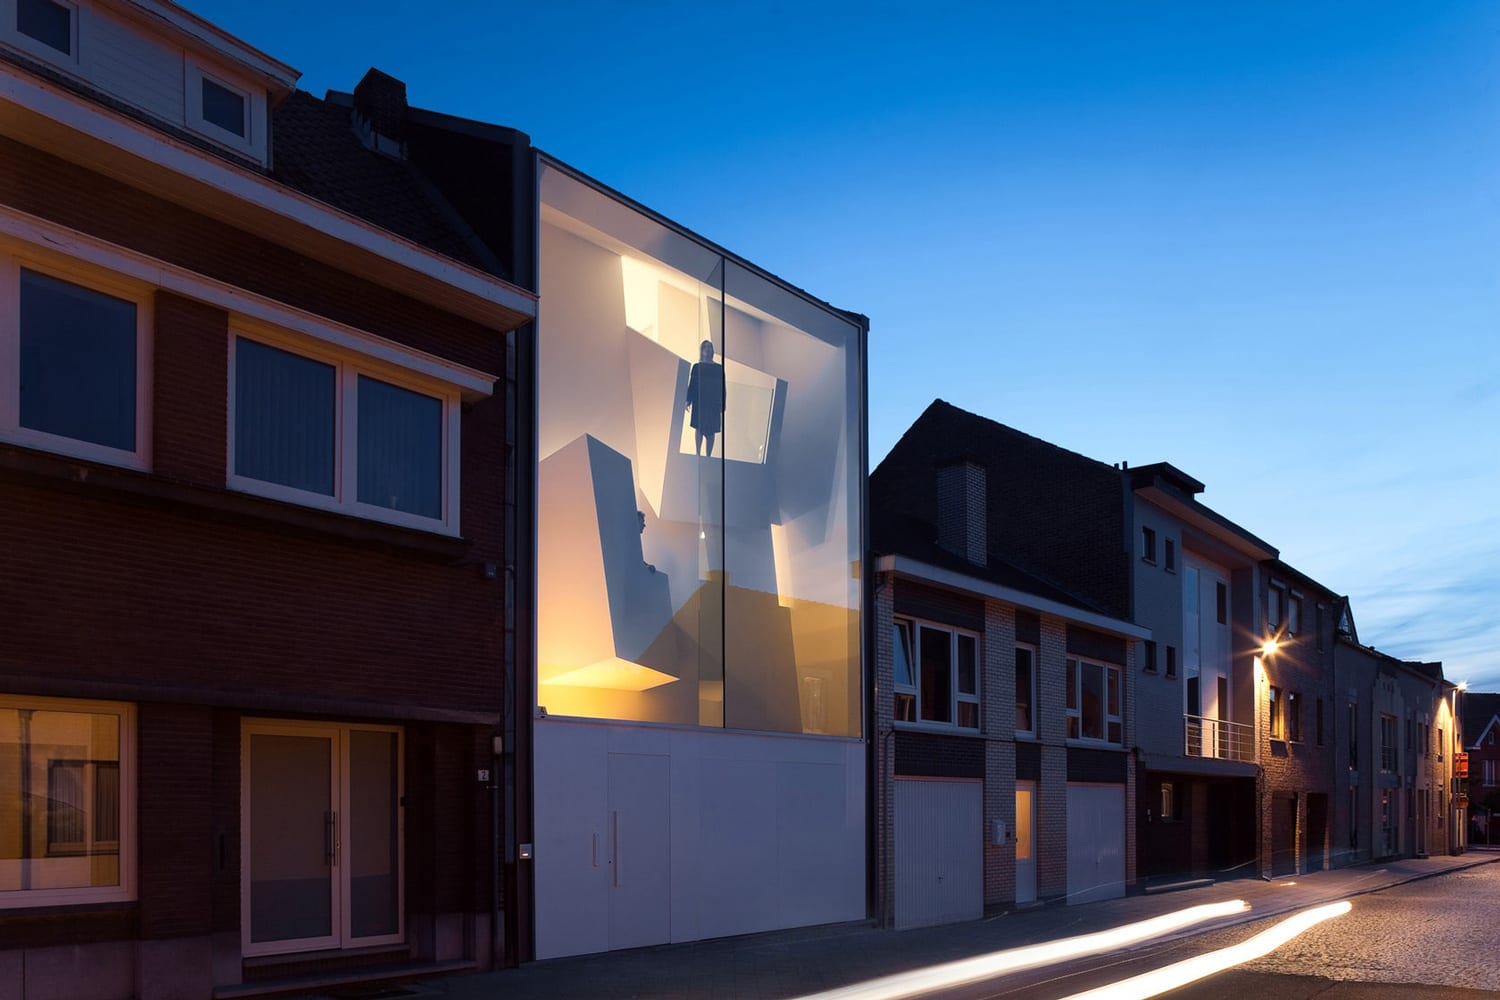 The Narrow House in Belgium by Bassam El Okeily | Yellowtrace